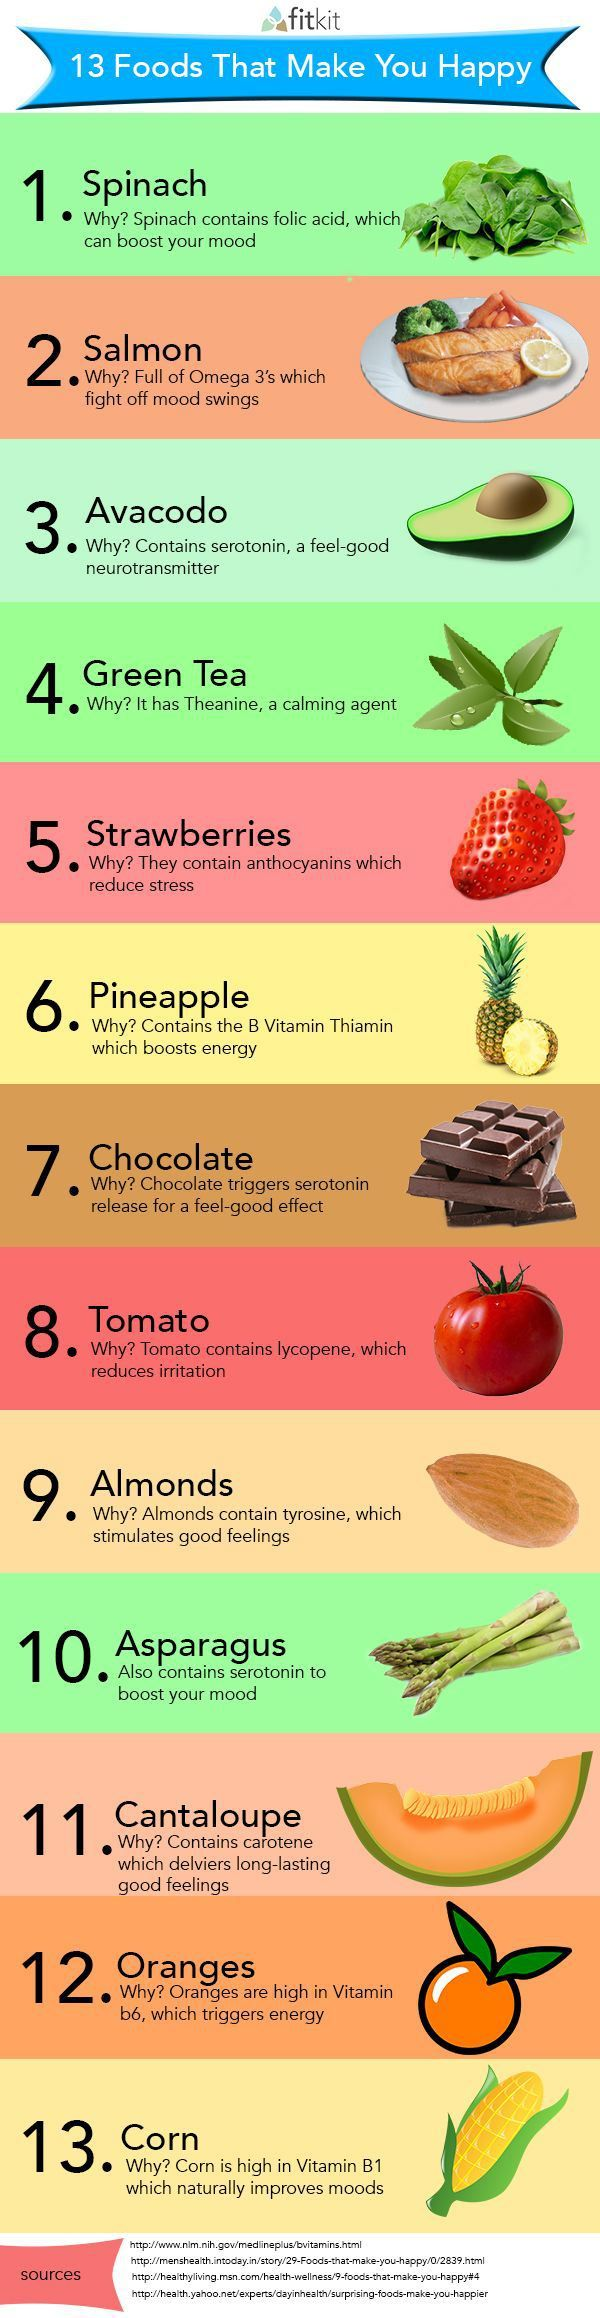 Foods to make you happier! Great facts on natural treatment for depression and anxiety